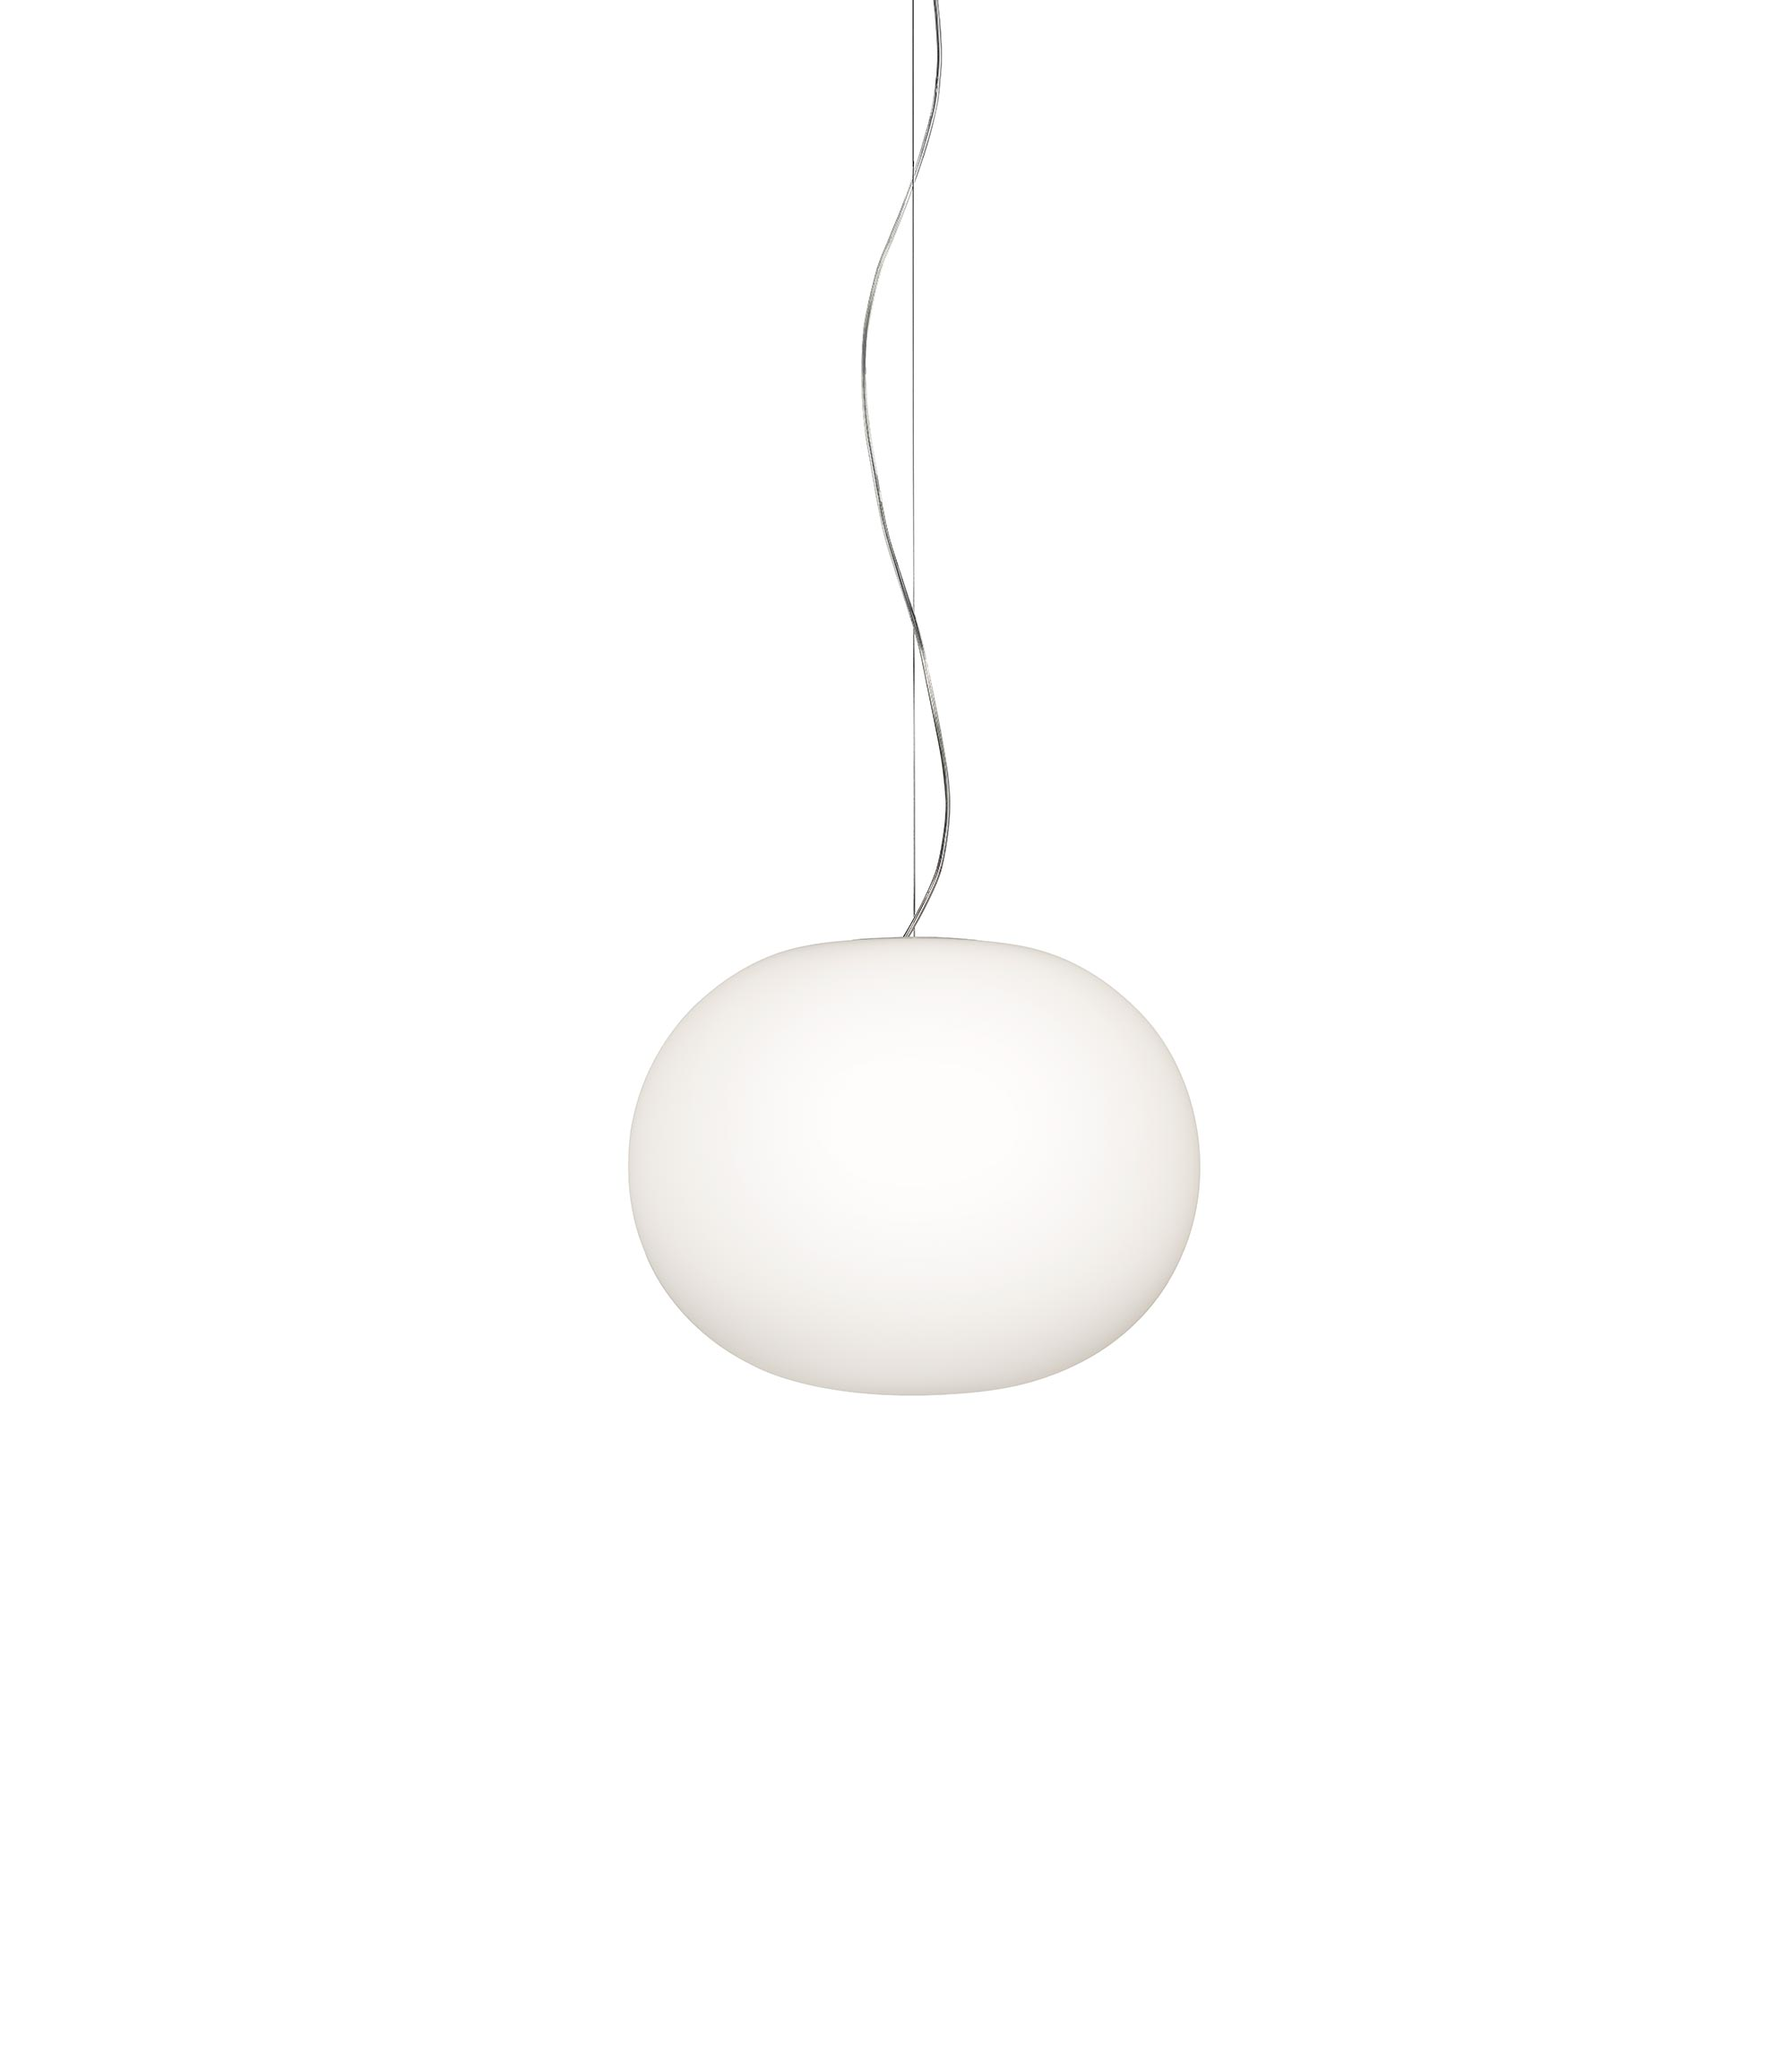 Glo ball suspension 2 morrison flos F3010061 product still life big